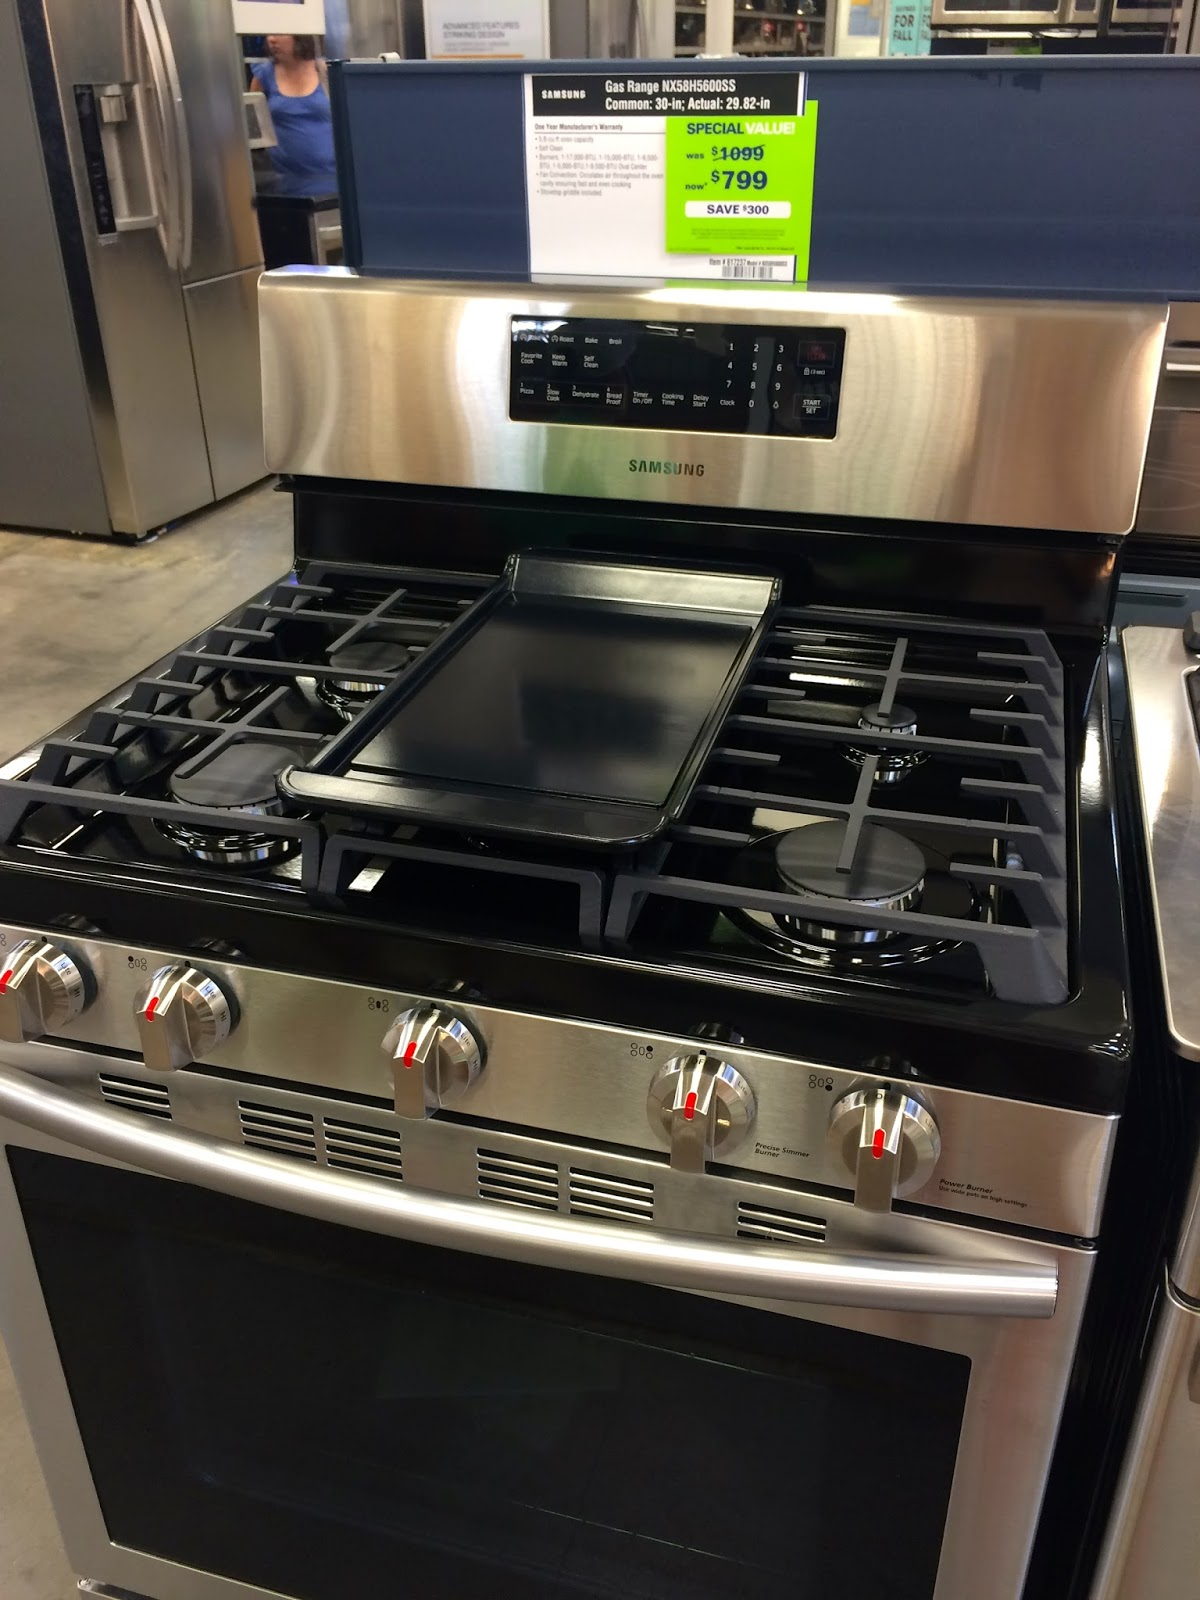 exciting cook stoves at lowes. We ended up getting it at Lowe s  also liked a Frigidaire stove there that was very similar but we have Samsung washer and dryer love them This Little House of Mine New Stove for Labor Day